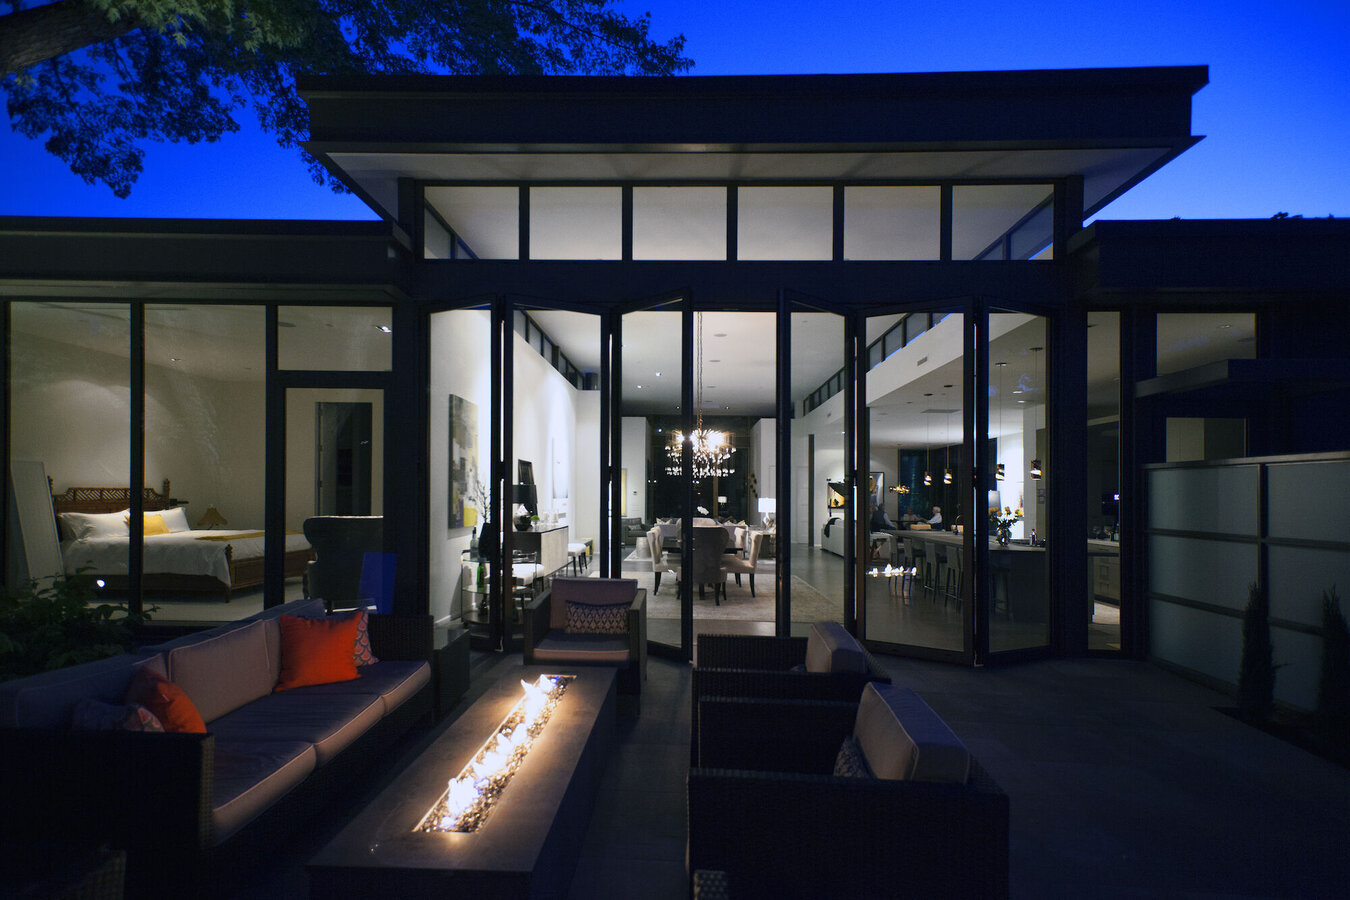 CS 68 Windows, CF 77 Sliding Systems and CS 68 Doors - Villa Modern Prairie House located in United States of America